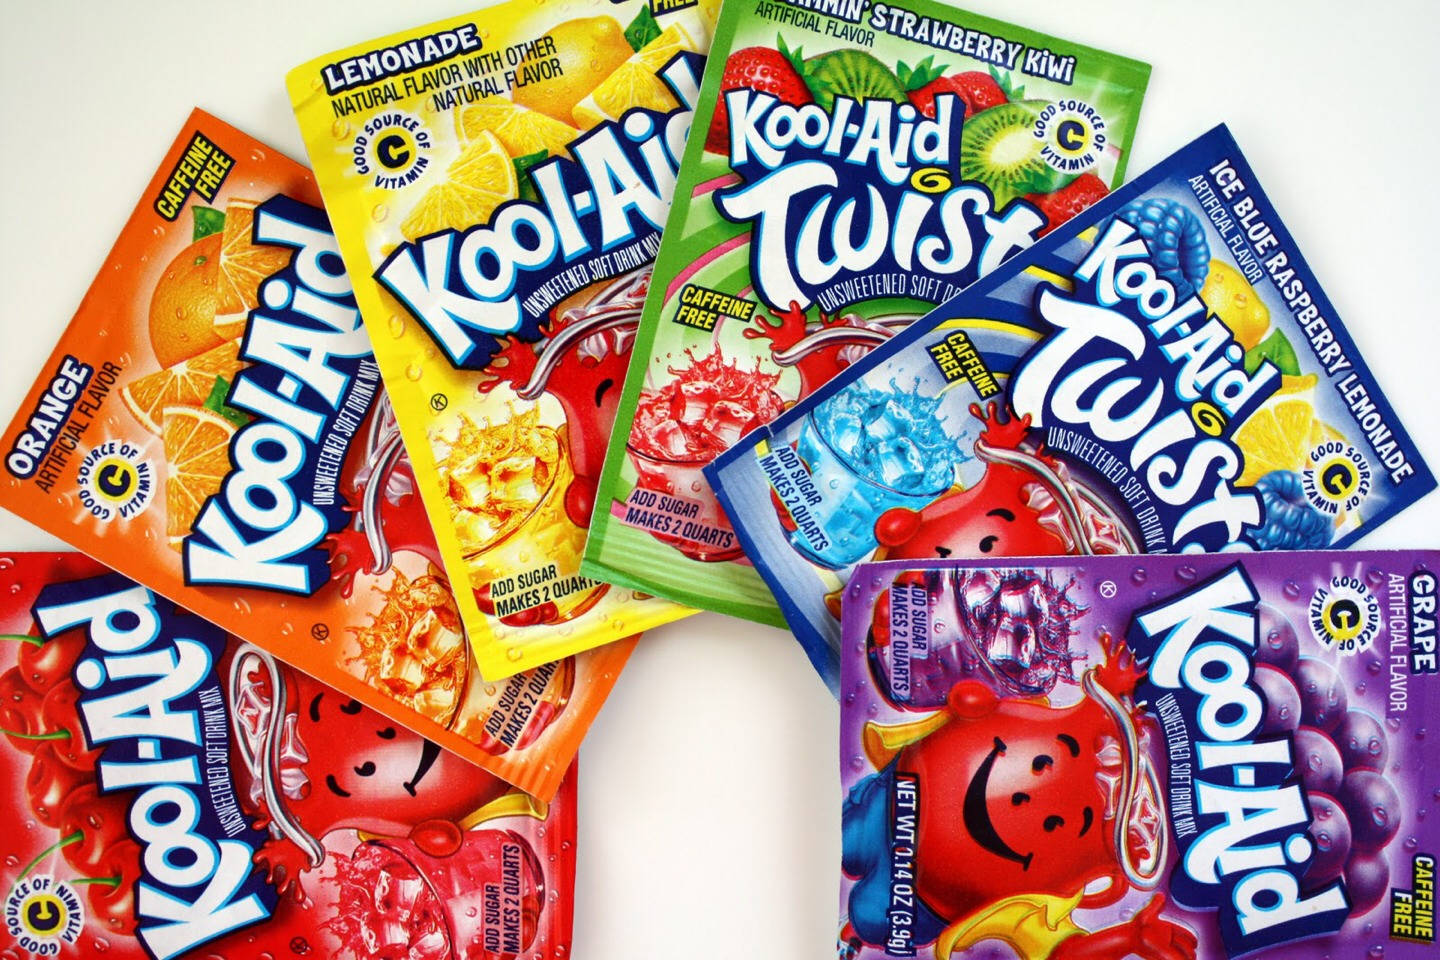 First pick your koolaid color red works best